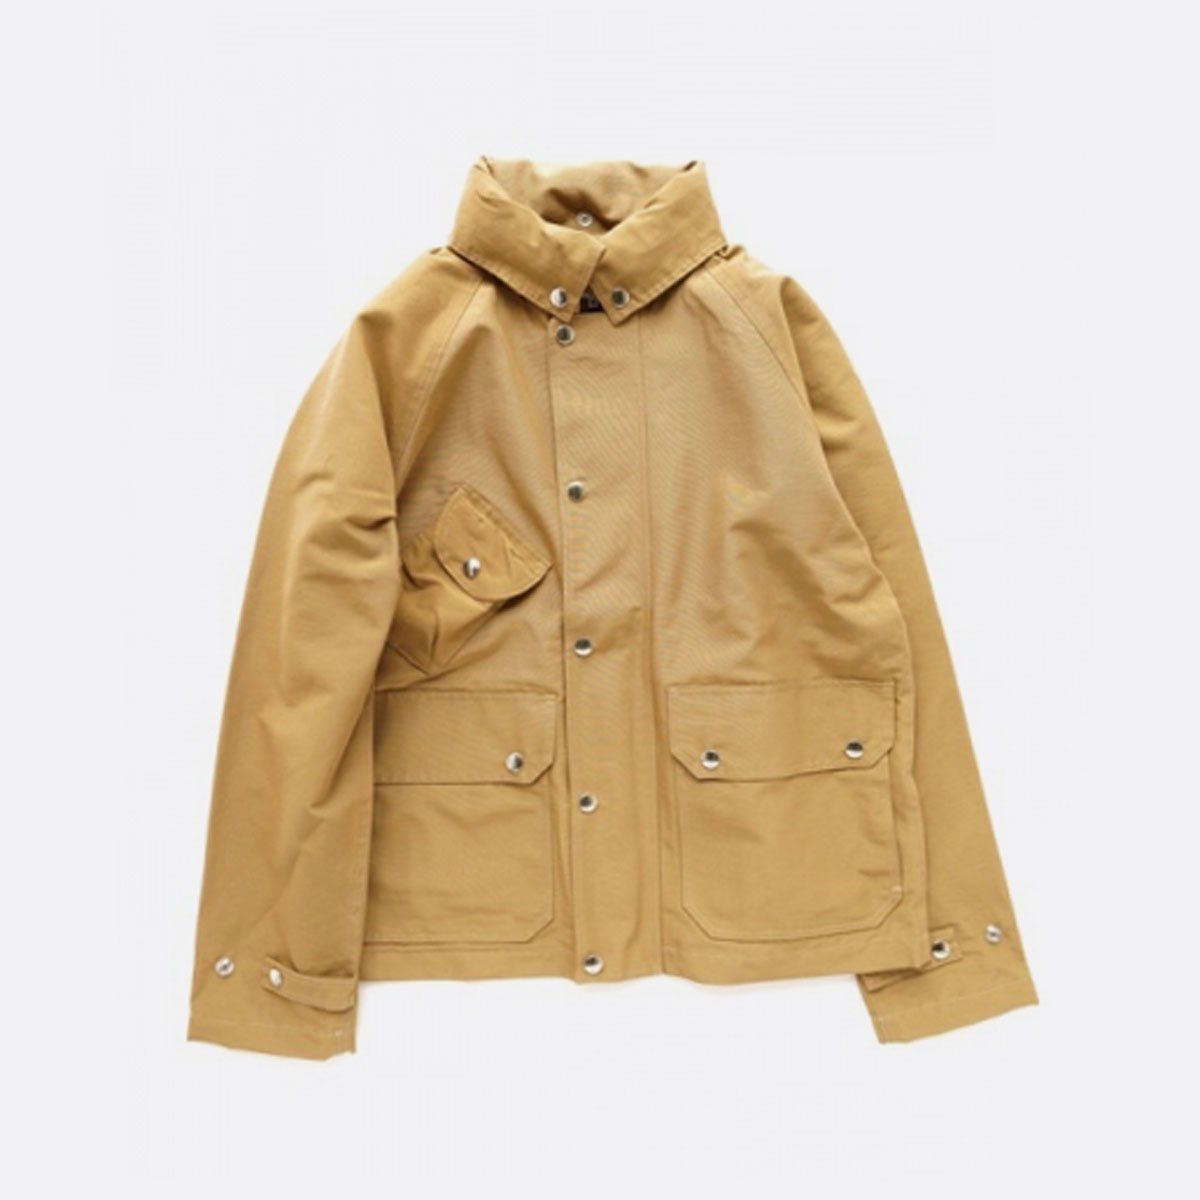 SOUTH2WEST8 60/40 CARMEL JACKET (KHAKI)